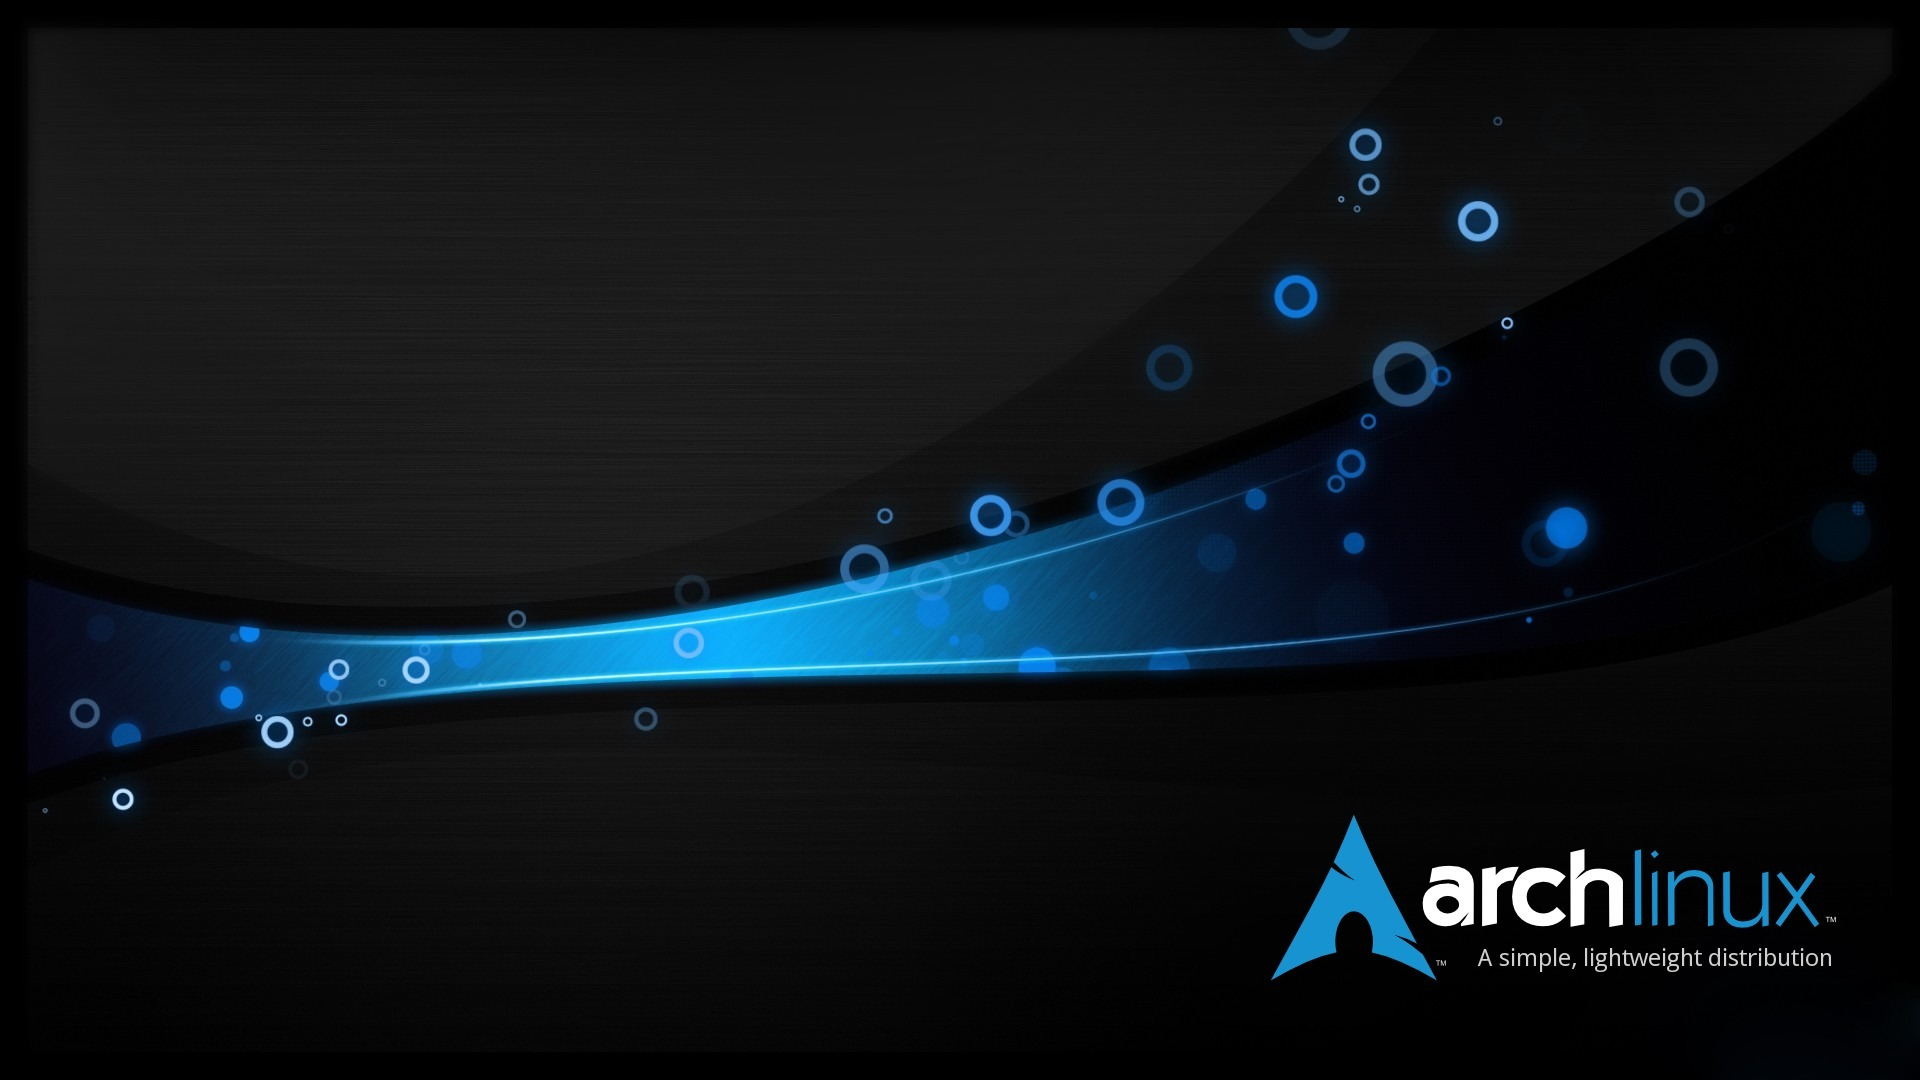 ArchLinux-wallpaper-wp3802503